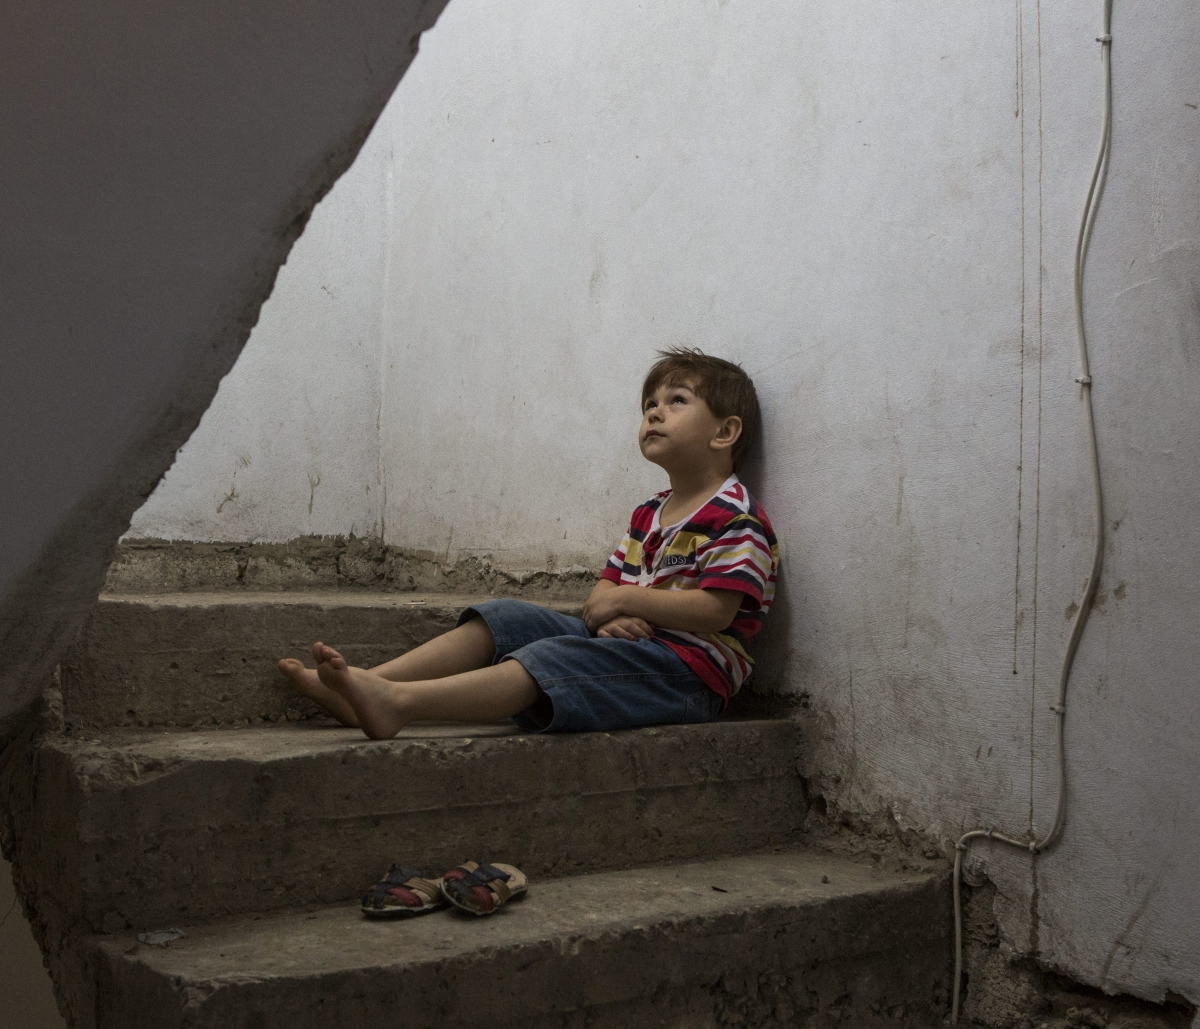 Omar, 8, sits in the stairwell of the building where he and his family have been living as refugees in Lebanon. © UNHCR/Ivor Prickett